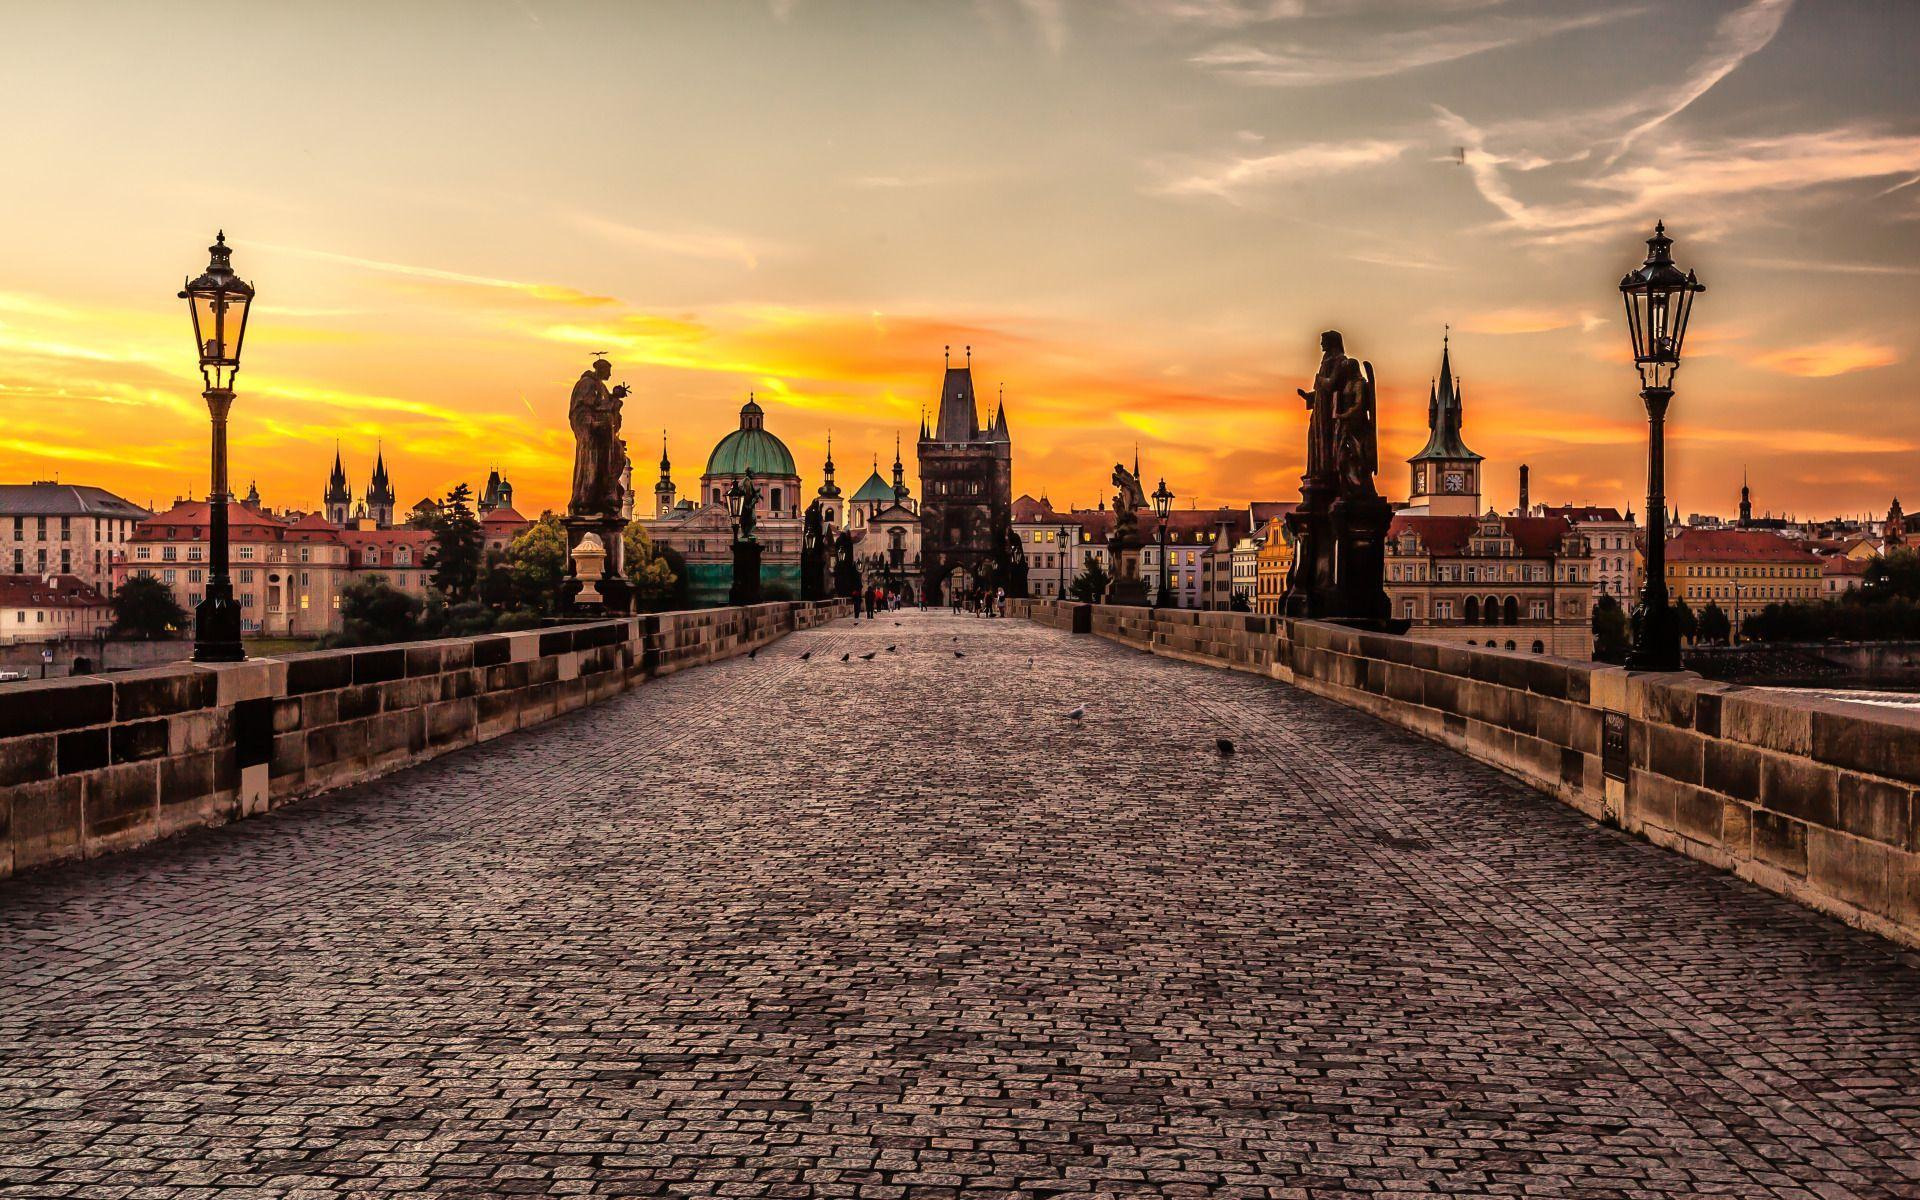 SQS69: Prague Wallpapers in Best Resolutions, HQFX